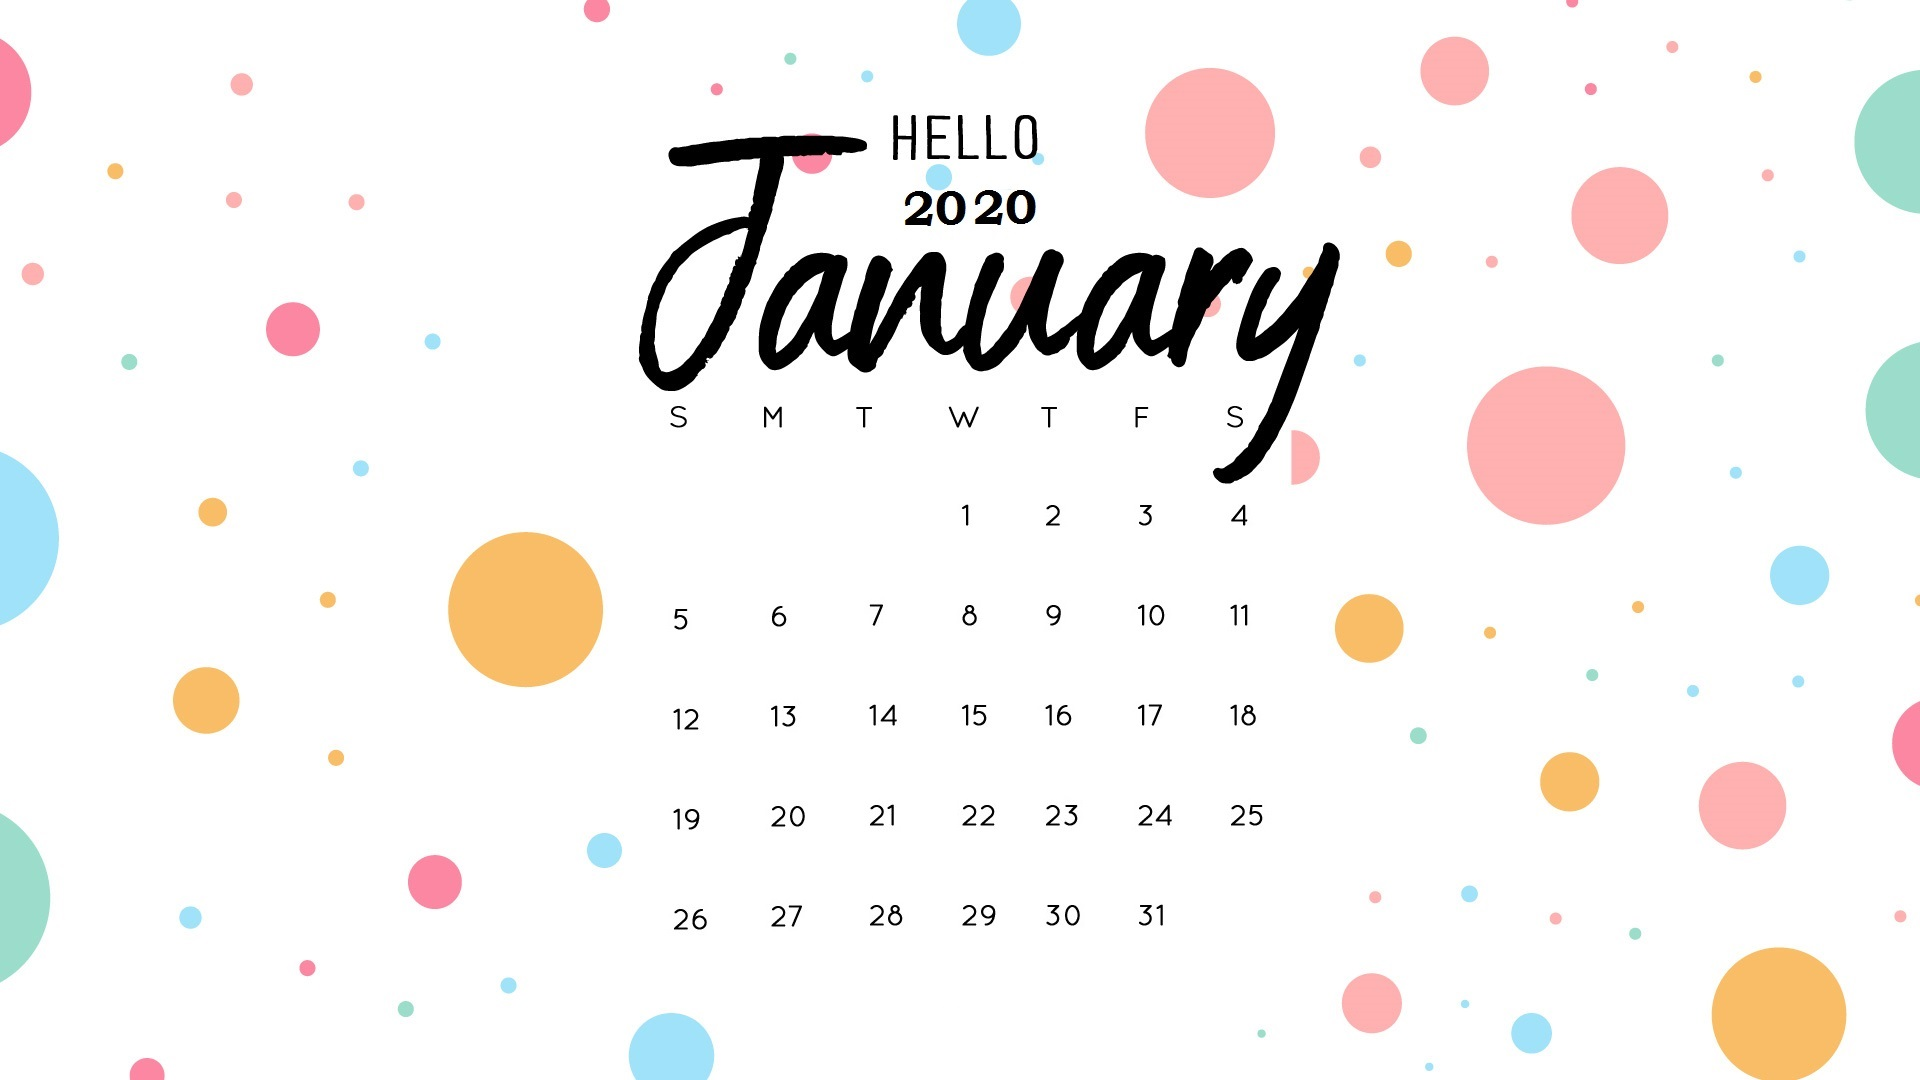 January 2020 Wallpaper Calendar Calendar 2019 1920x1080